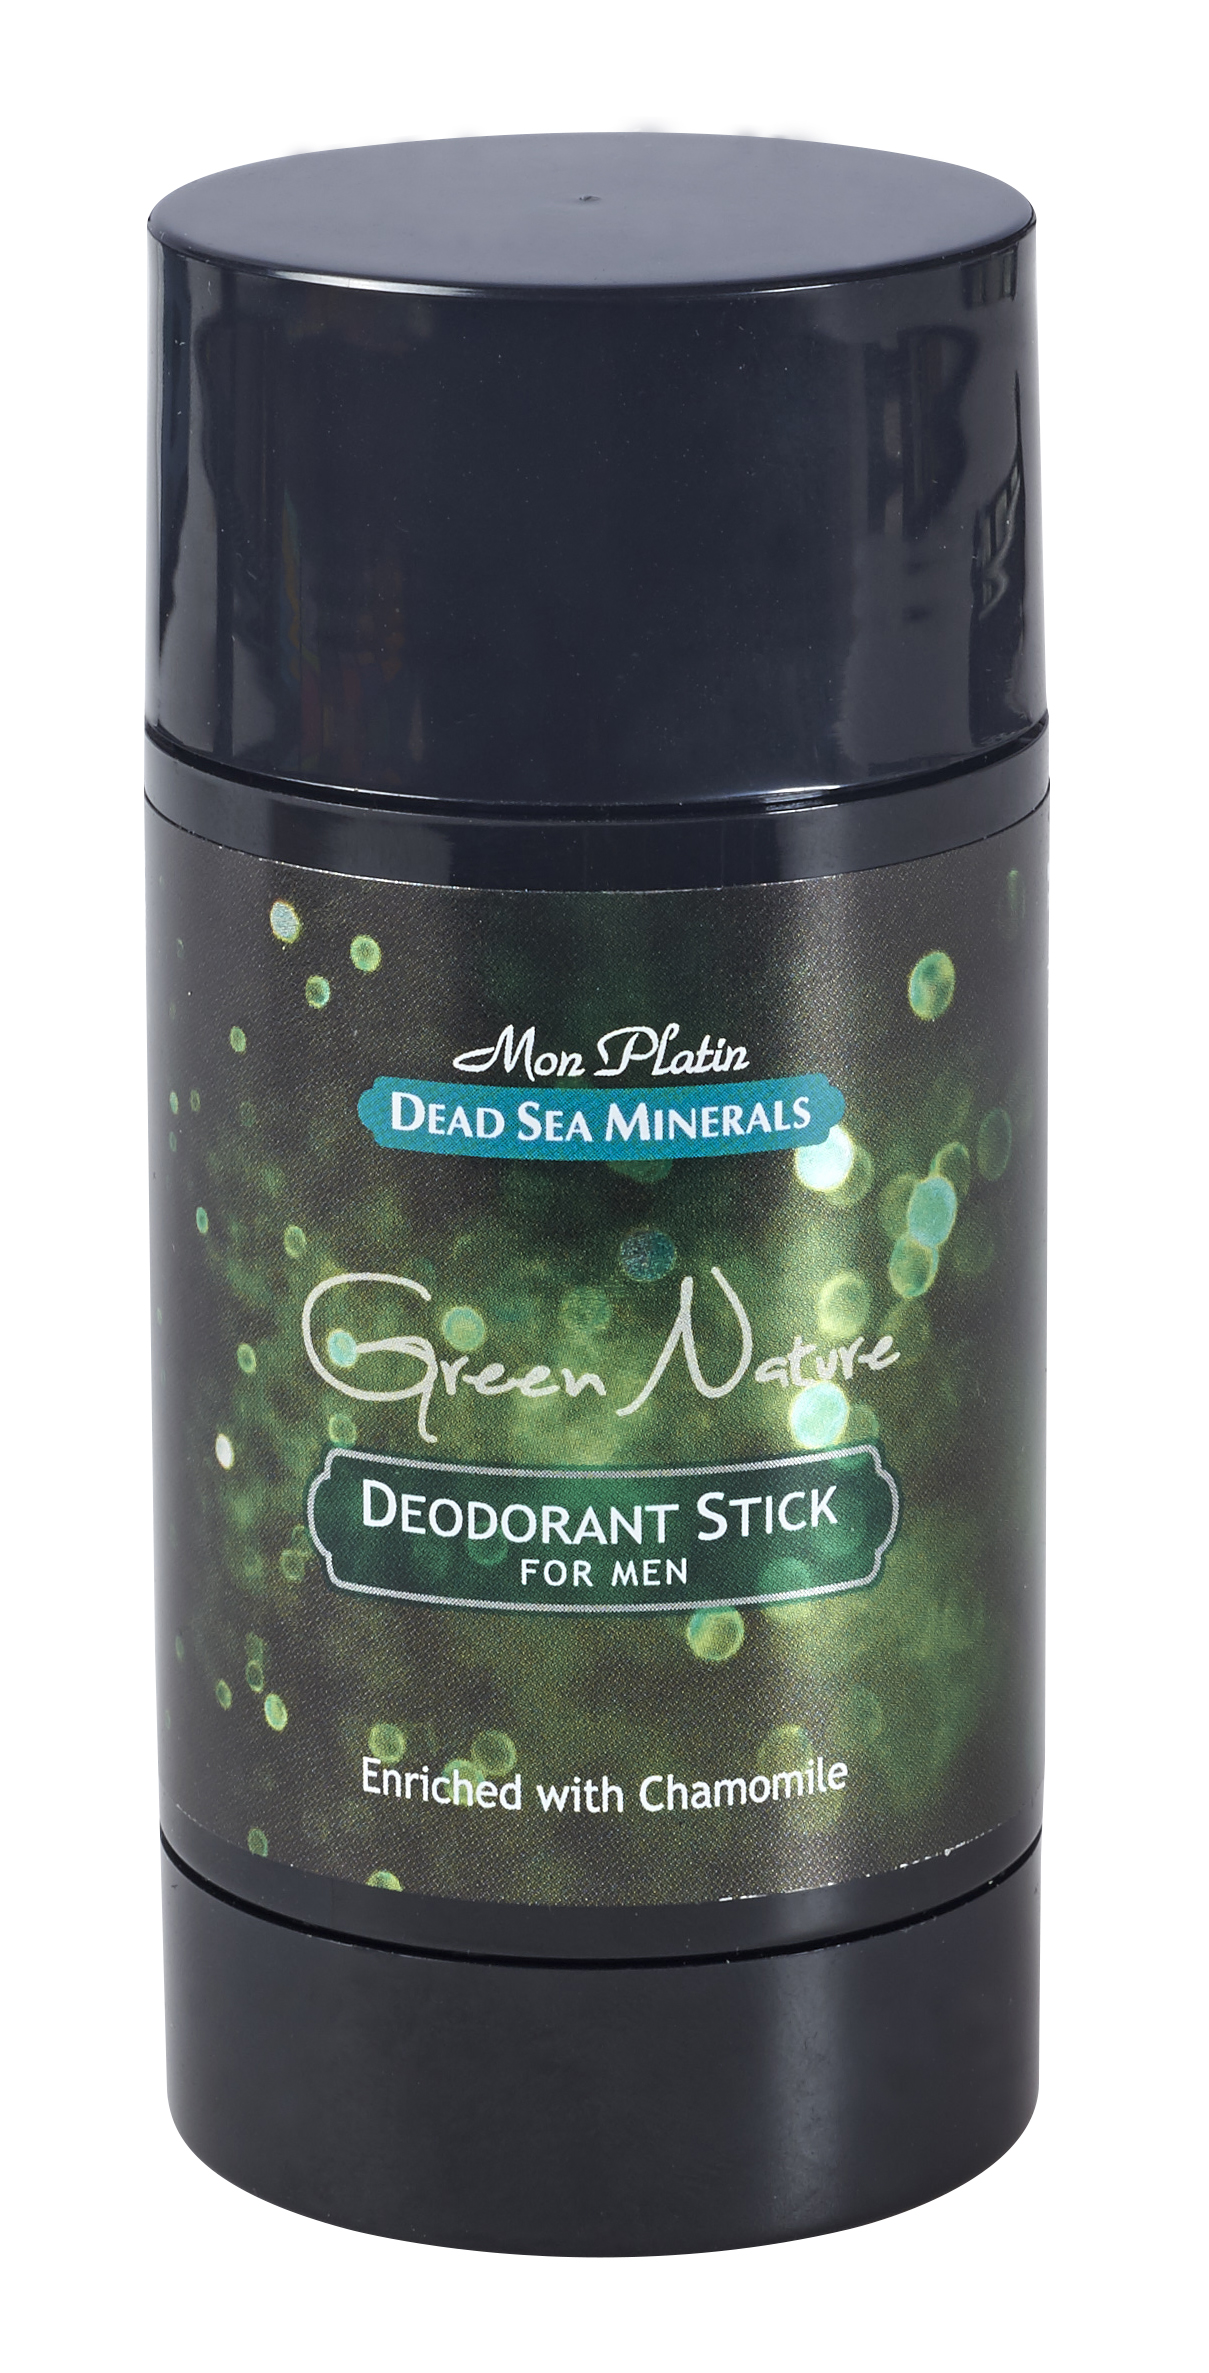 Deodorant Stick for Men Green Nature : image 1